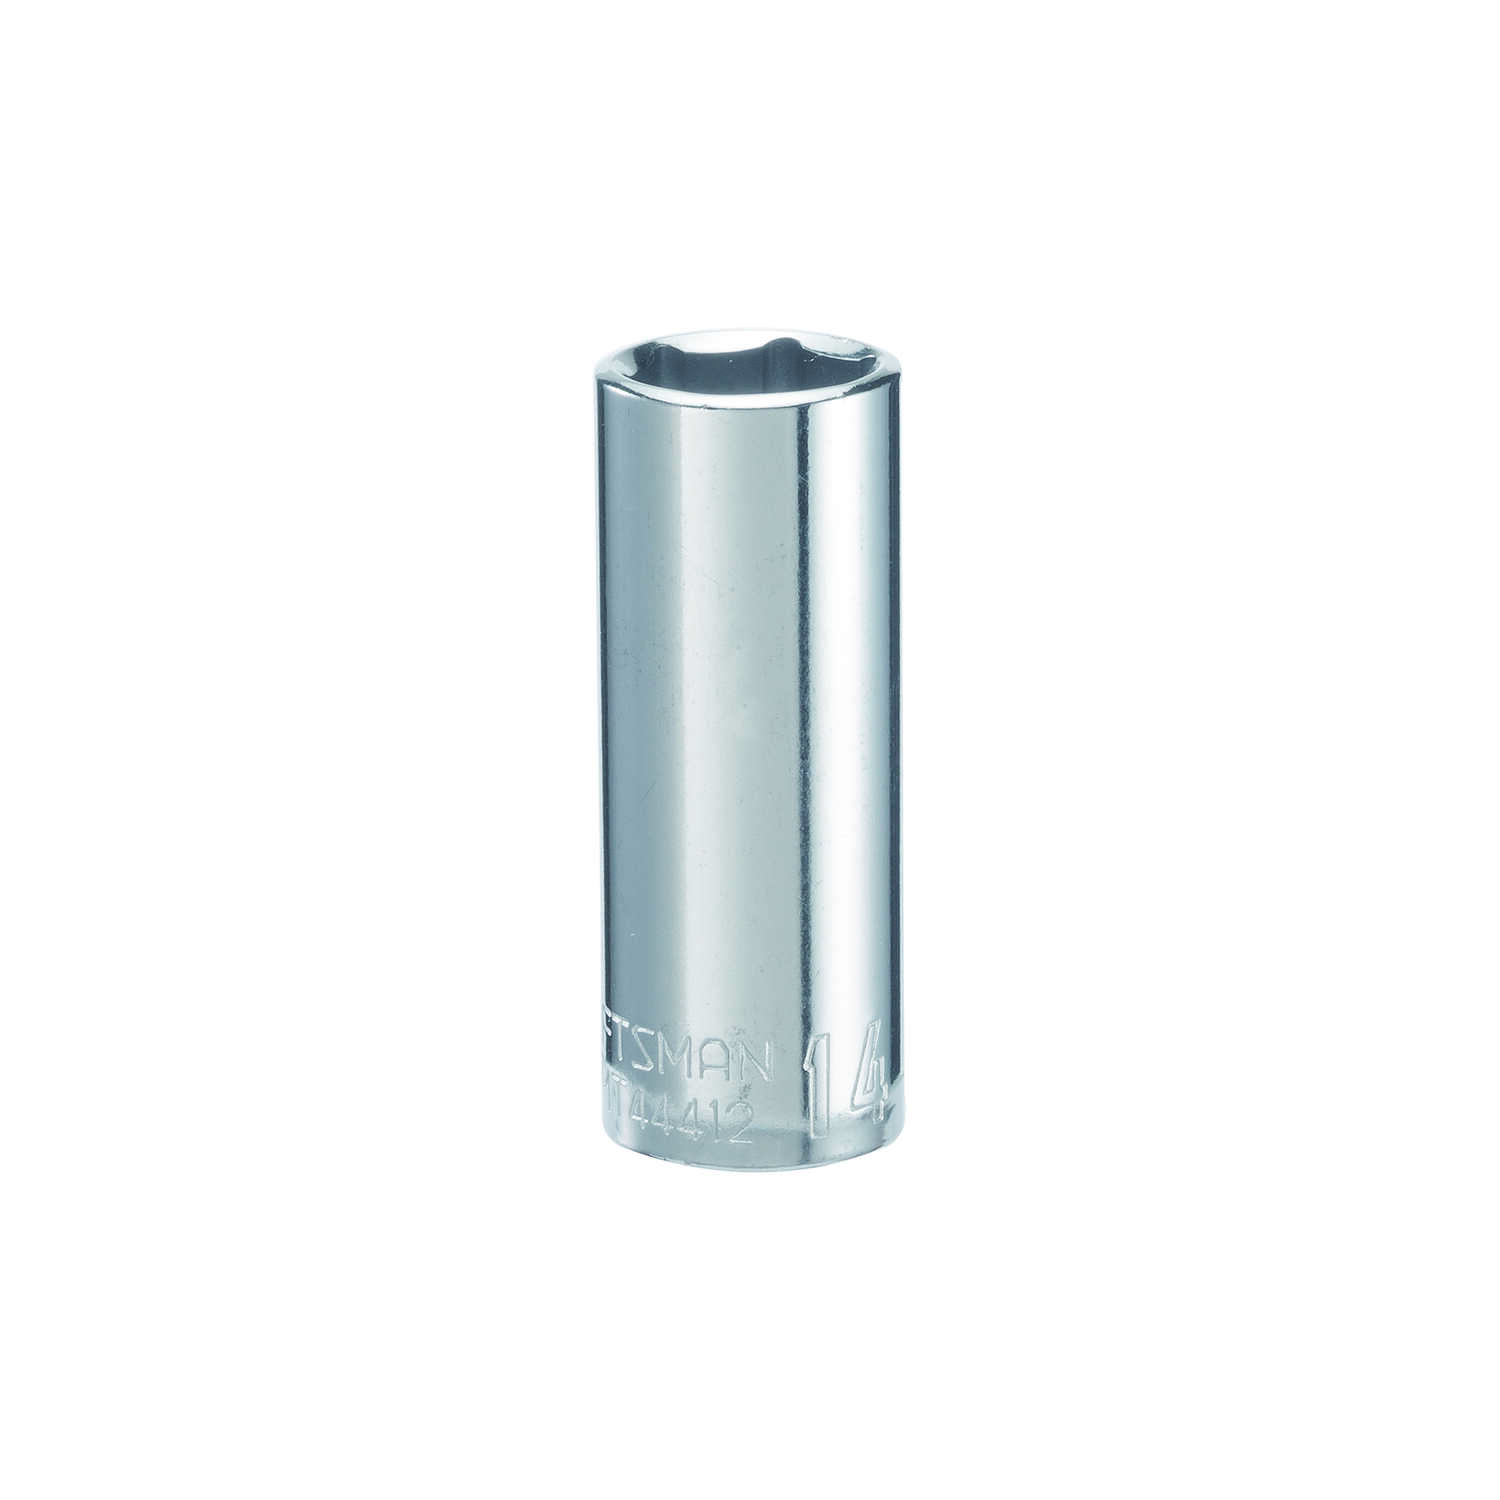 Craftsman  14 mm  x 1/4 in. drive  Metric  6 Point Deep  Socket  1 pc.